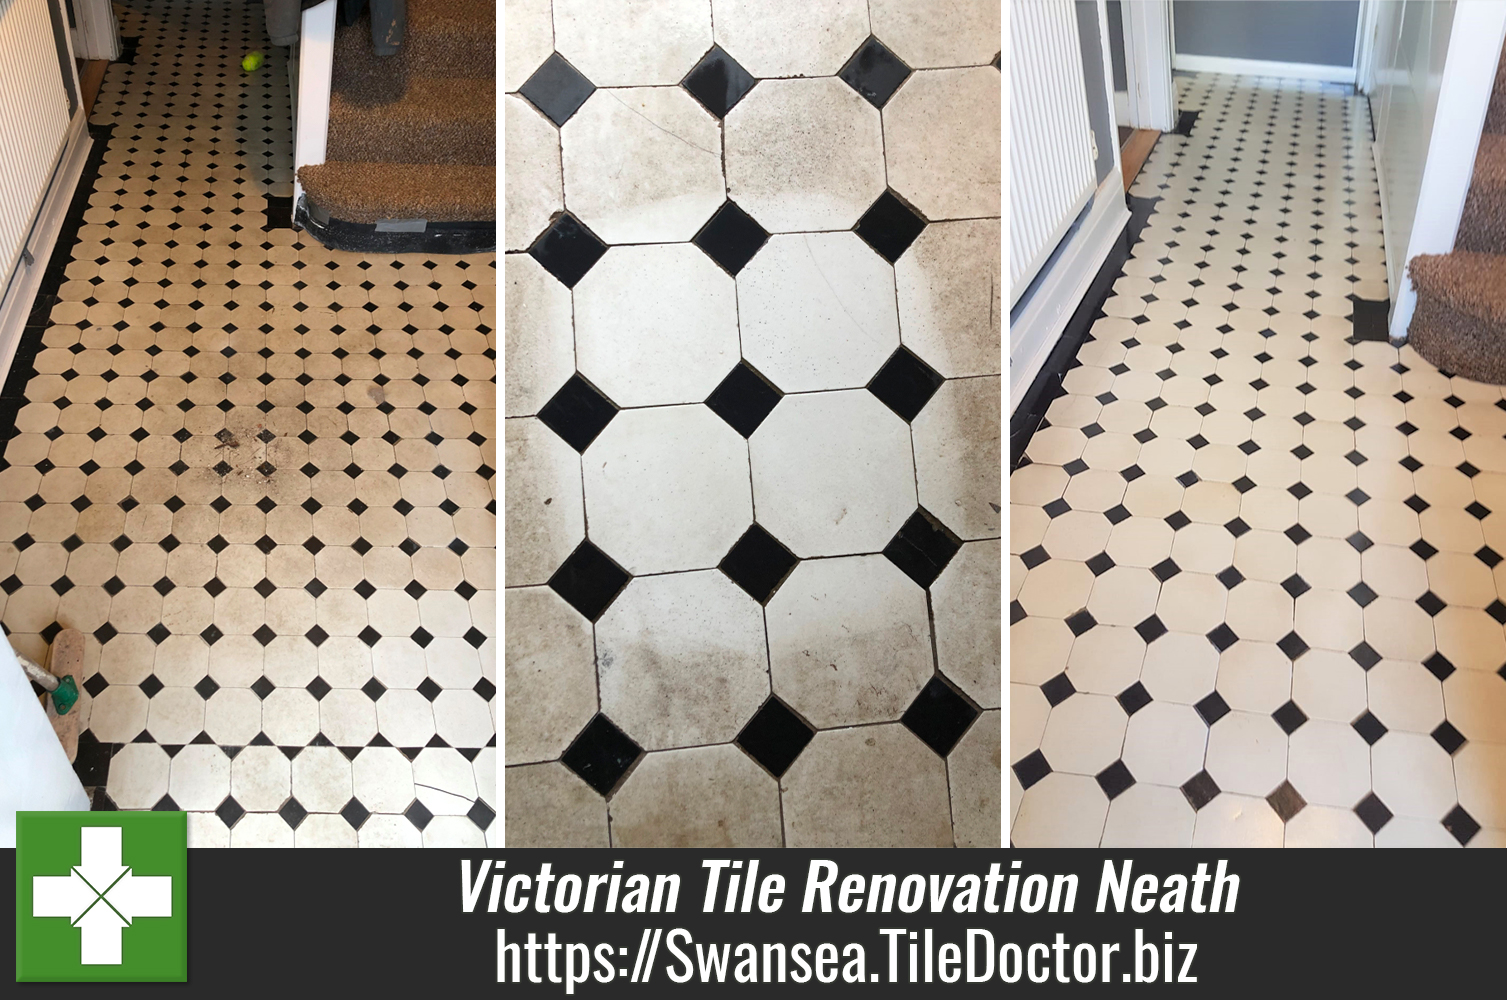 Victorian Tiled Hallway Floor Before After Renovation Neath